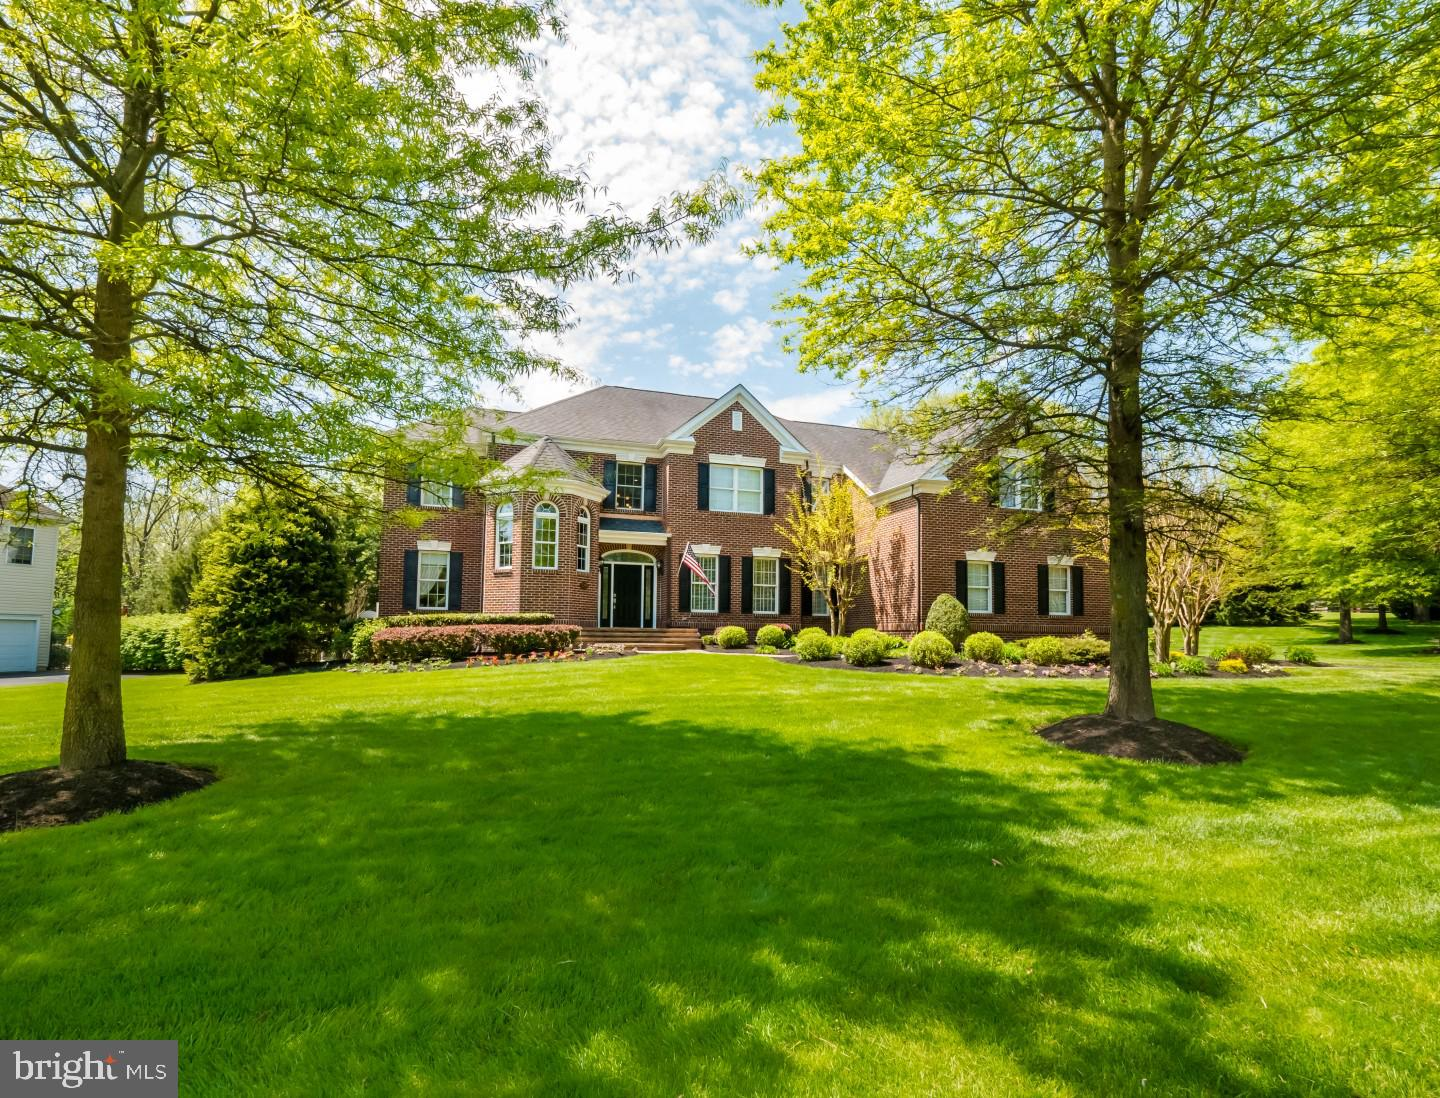 1299 ENOCH COURT, YARDLEY, PA 19067